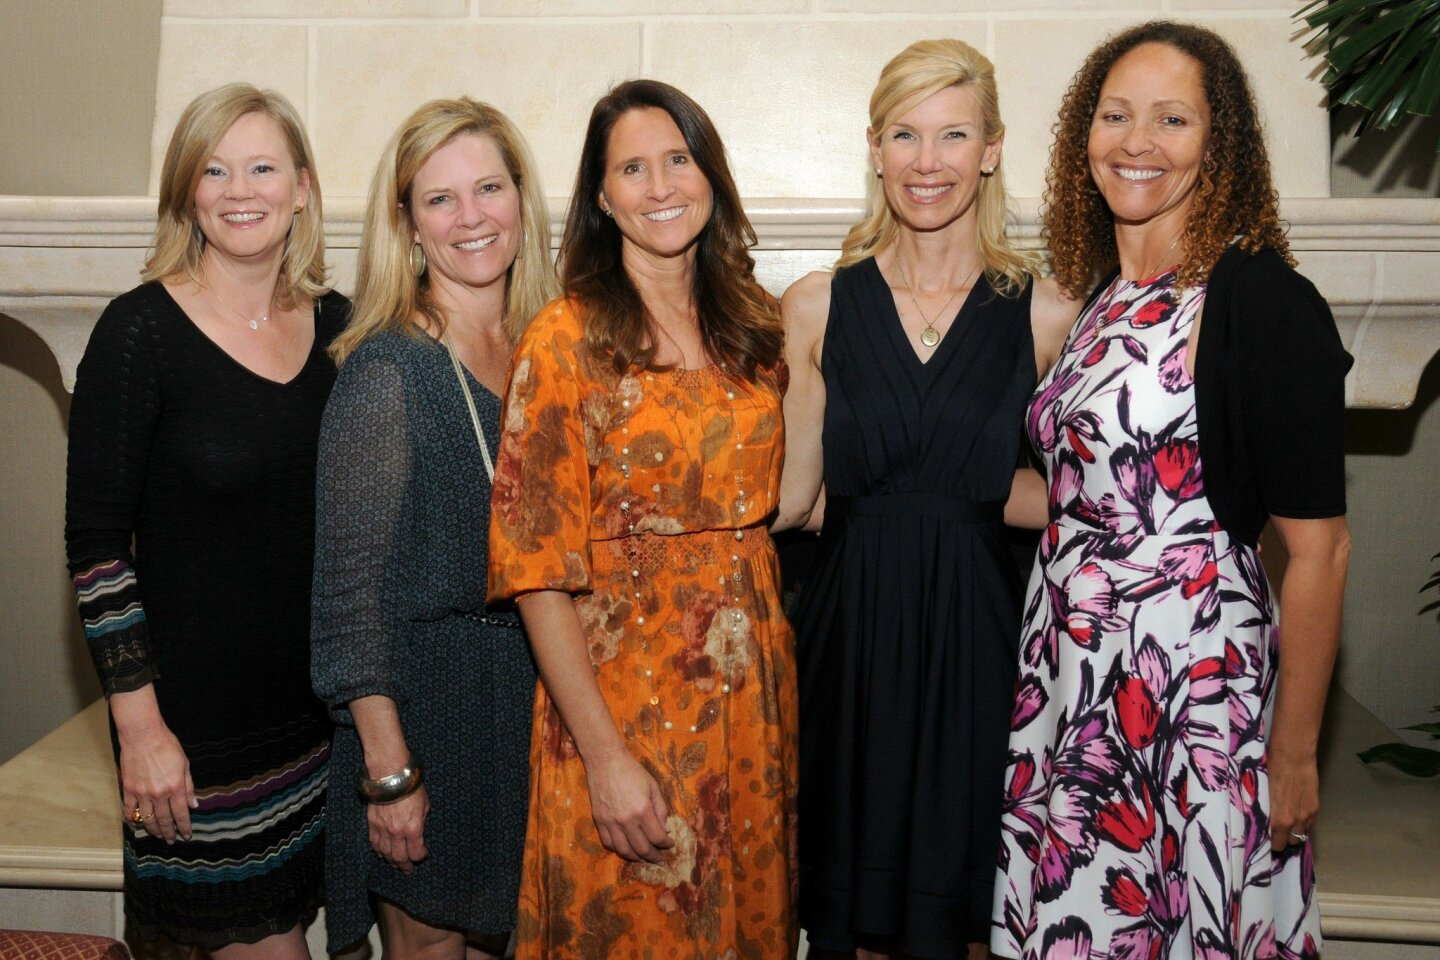 St. Germaine's officers April Winograd, Mary Levinson, Wendy Neri, Betsy Witt and Ruth Leivers (St. Germaine Children's Charity held its annual Membership & Grants Luncheon June 7, 2016 at La Jolla Country Club.)